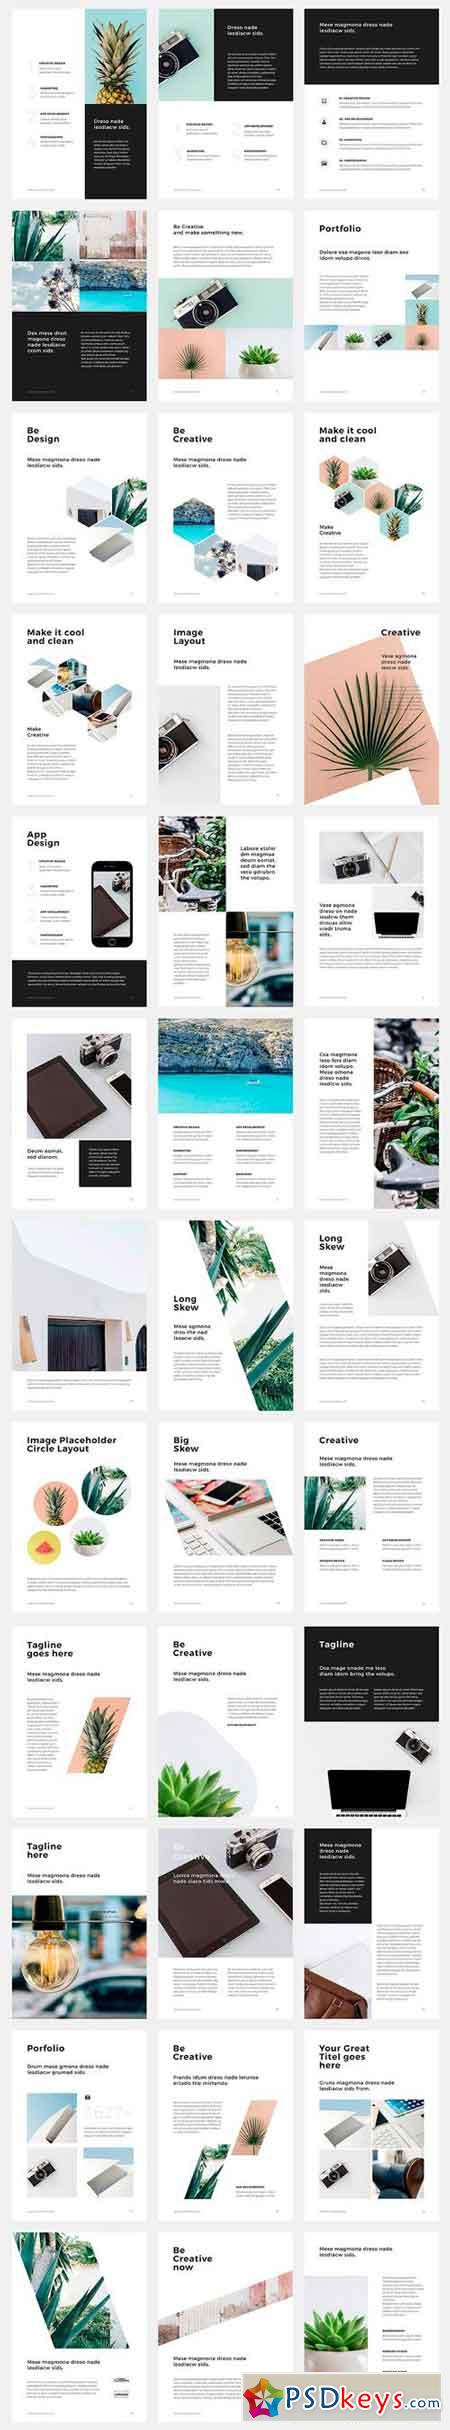 A4 Vertical Keynote +30 Free Photos 1295422